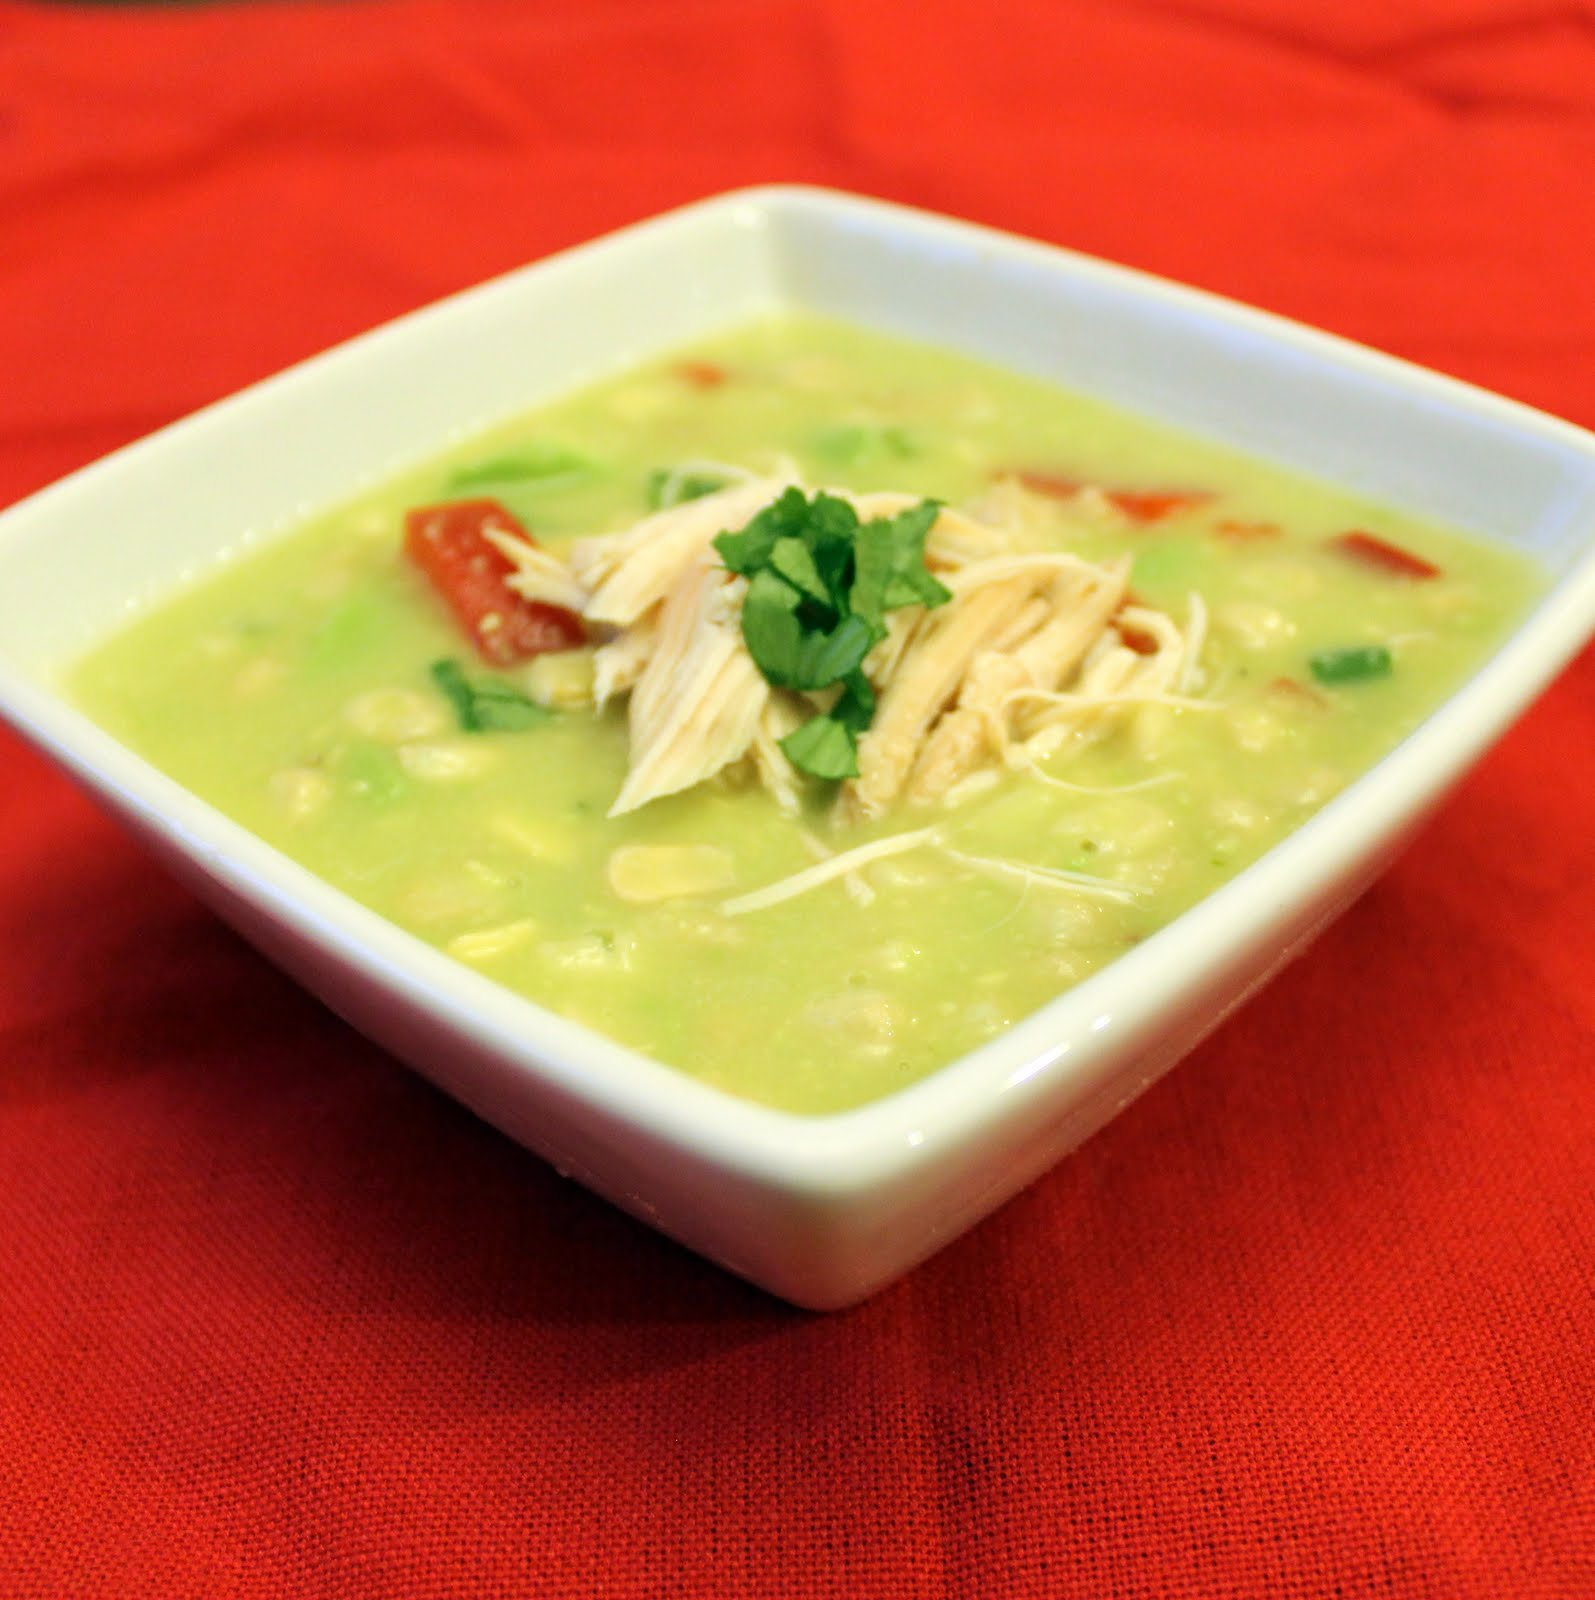 Avocado-Corn Chowder with Rotisserie Chicken | I Can Cook That